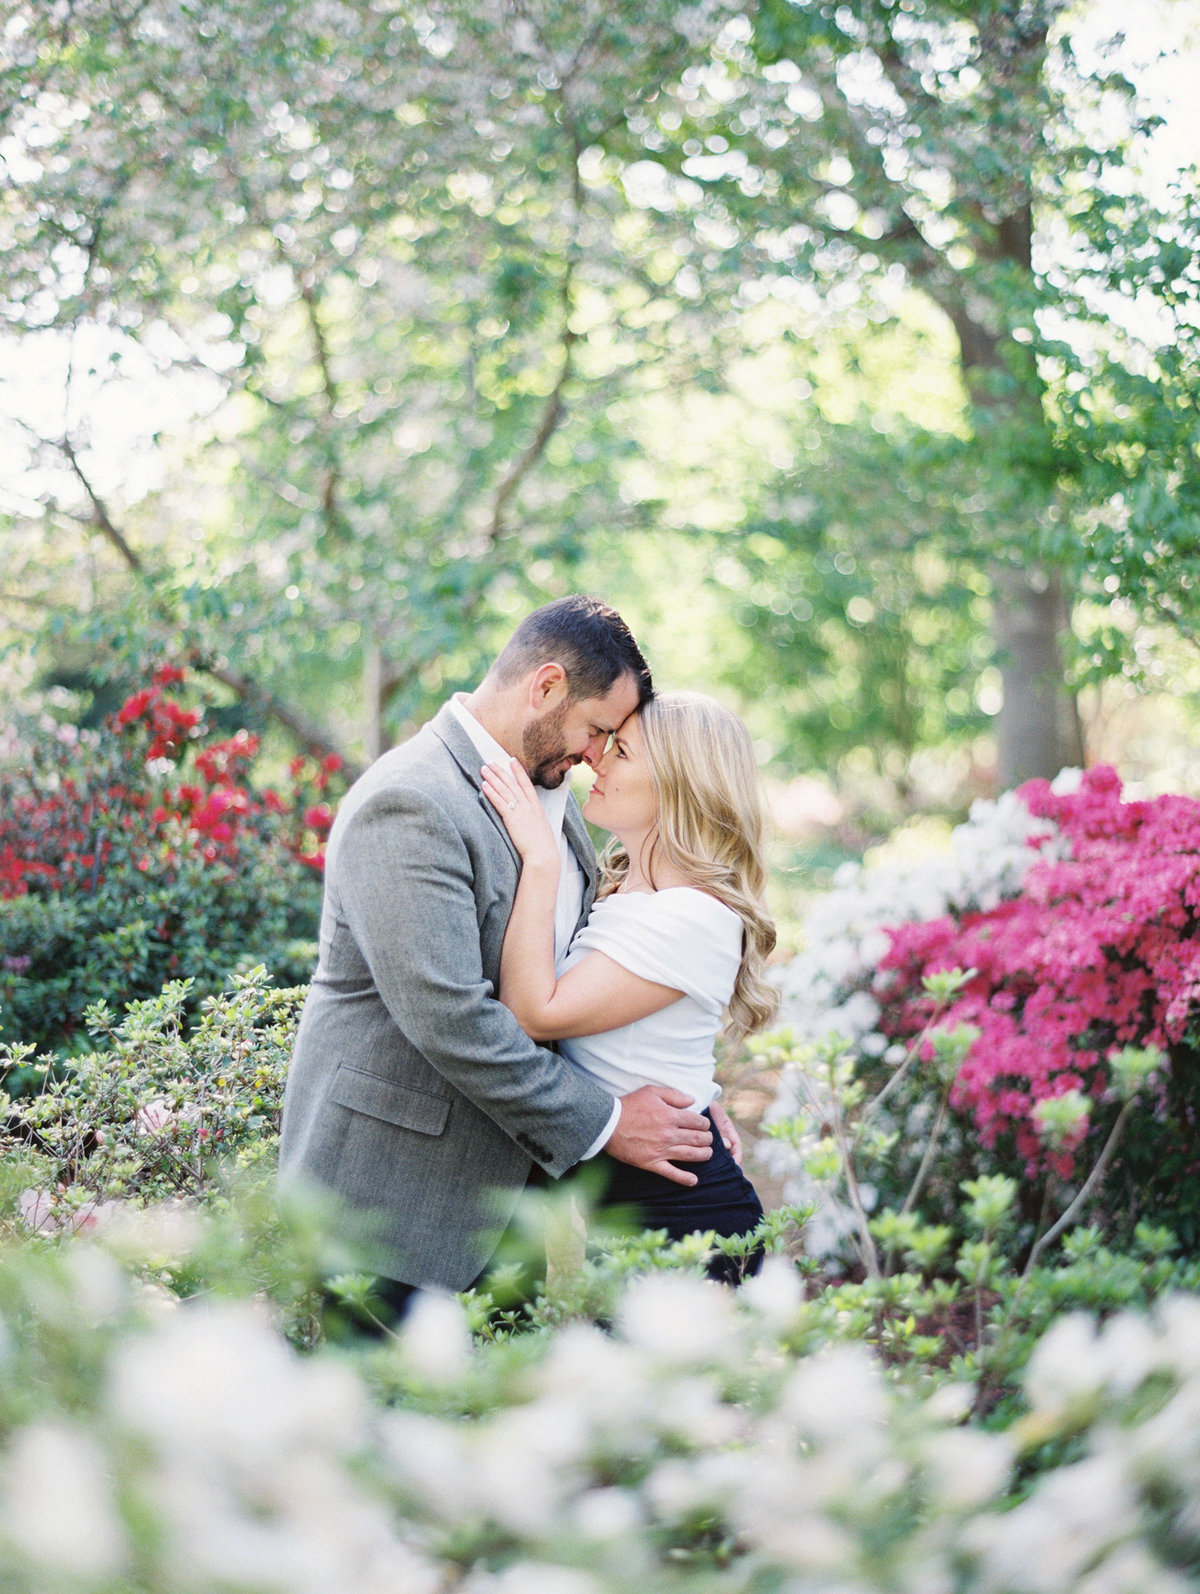 Courtney Hanson Photography - Dallas Spring Engagement Photos-002-2